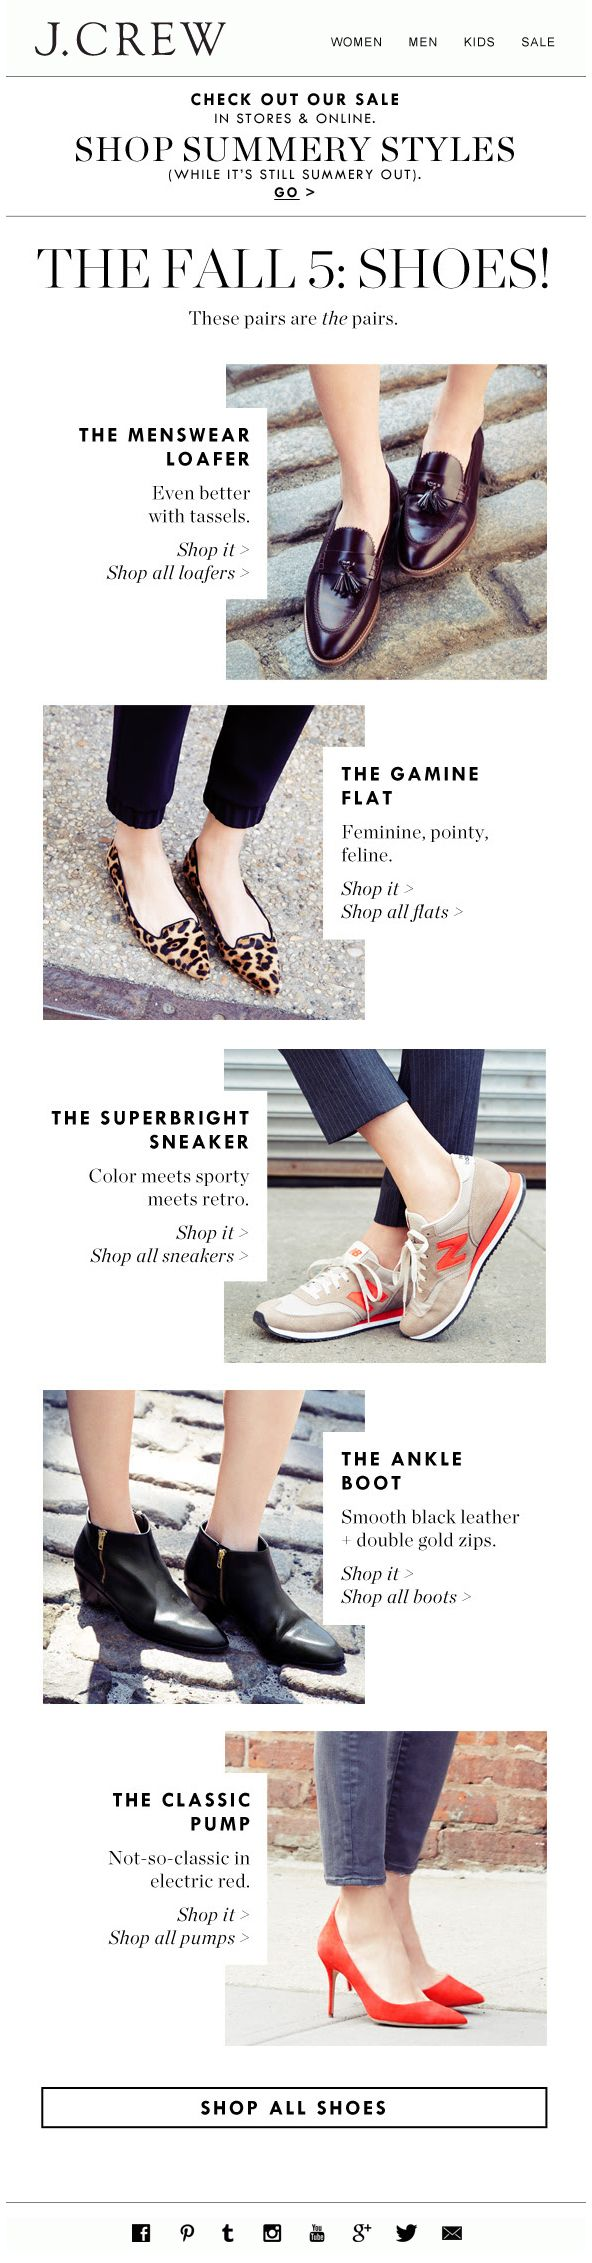 J.CREW : Top Products #shoes edm